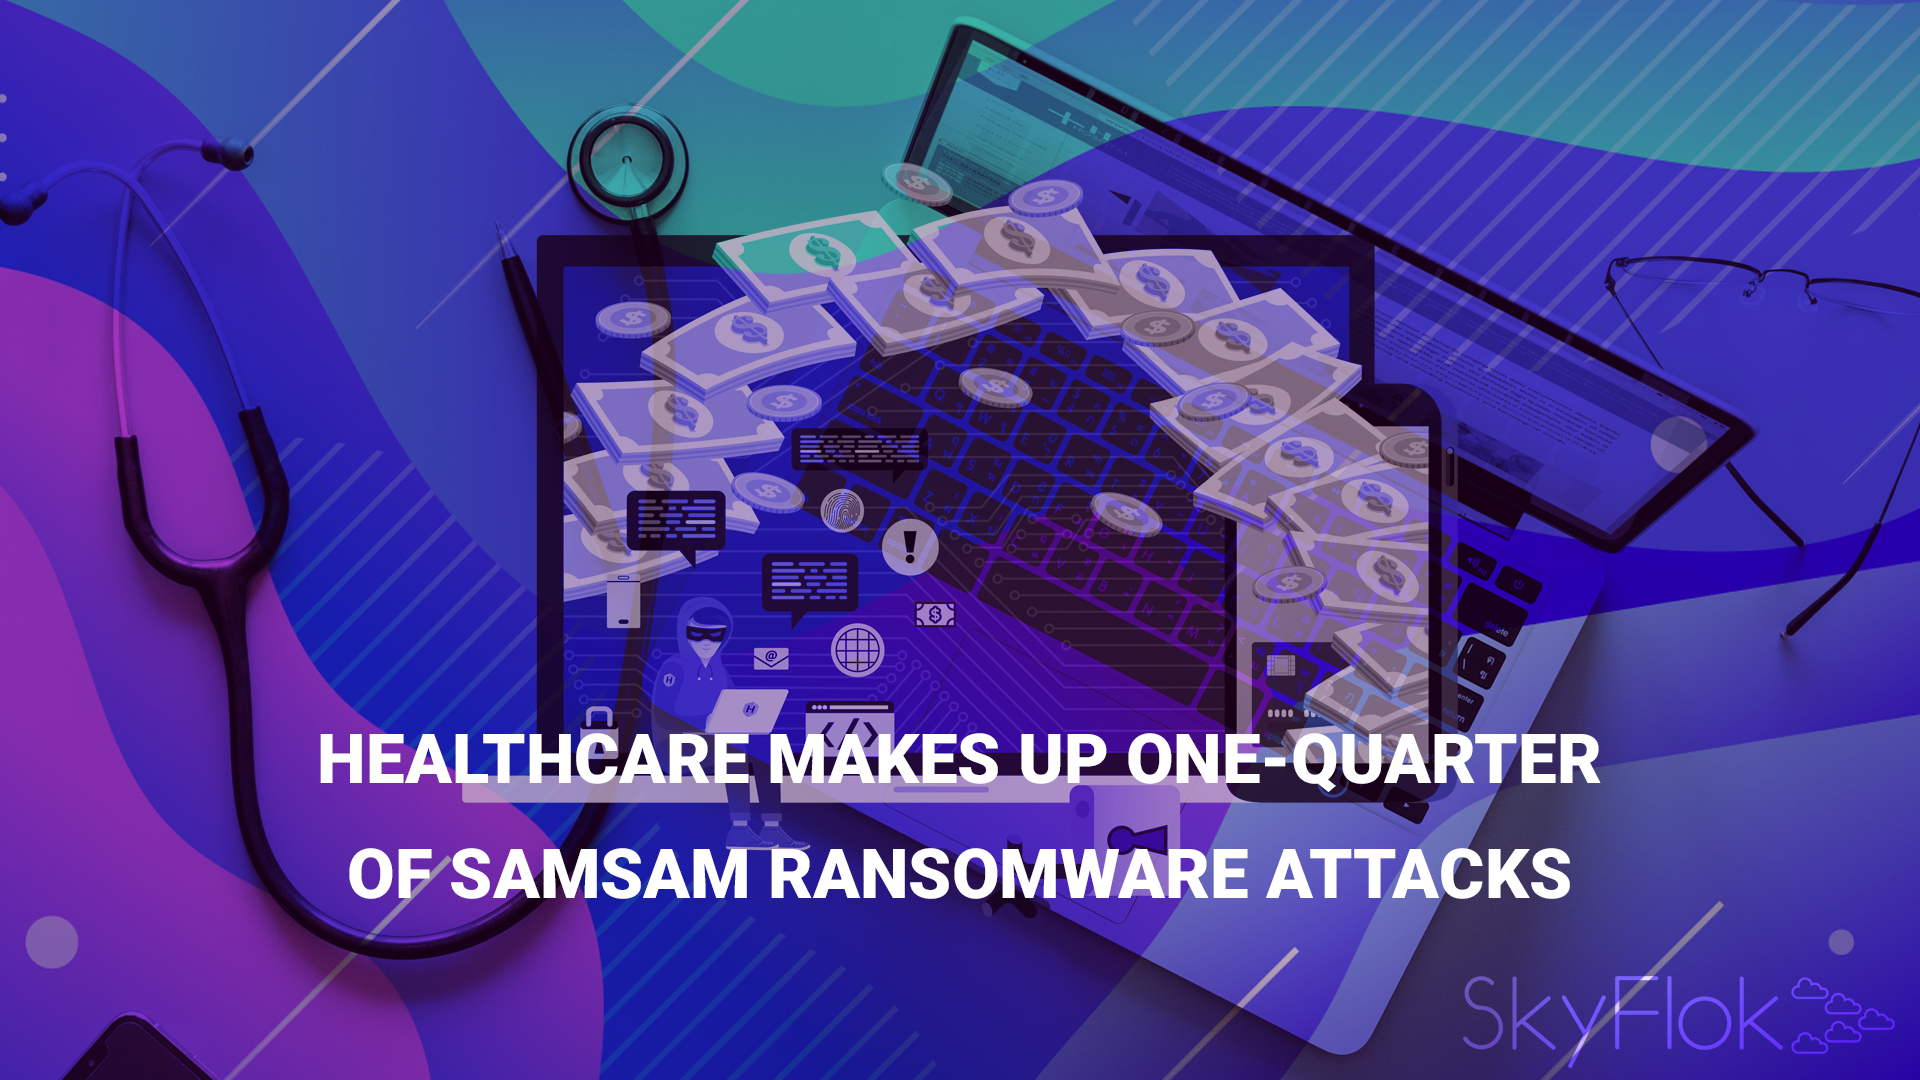 Healthcare Makes Up One-Quarter of SamSam Ransomware Attacks